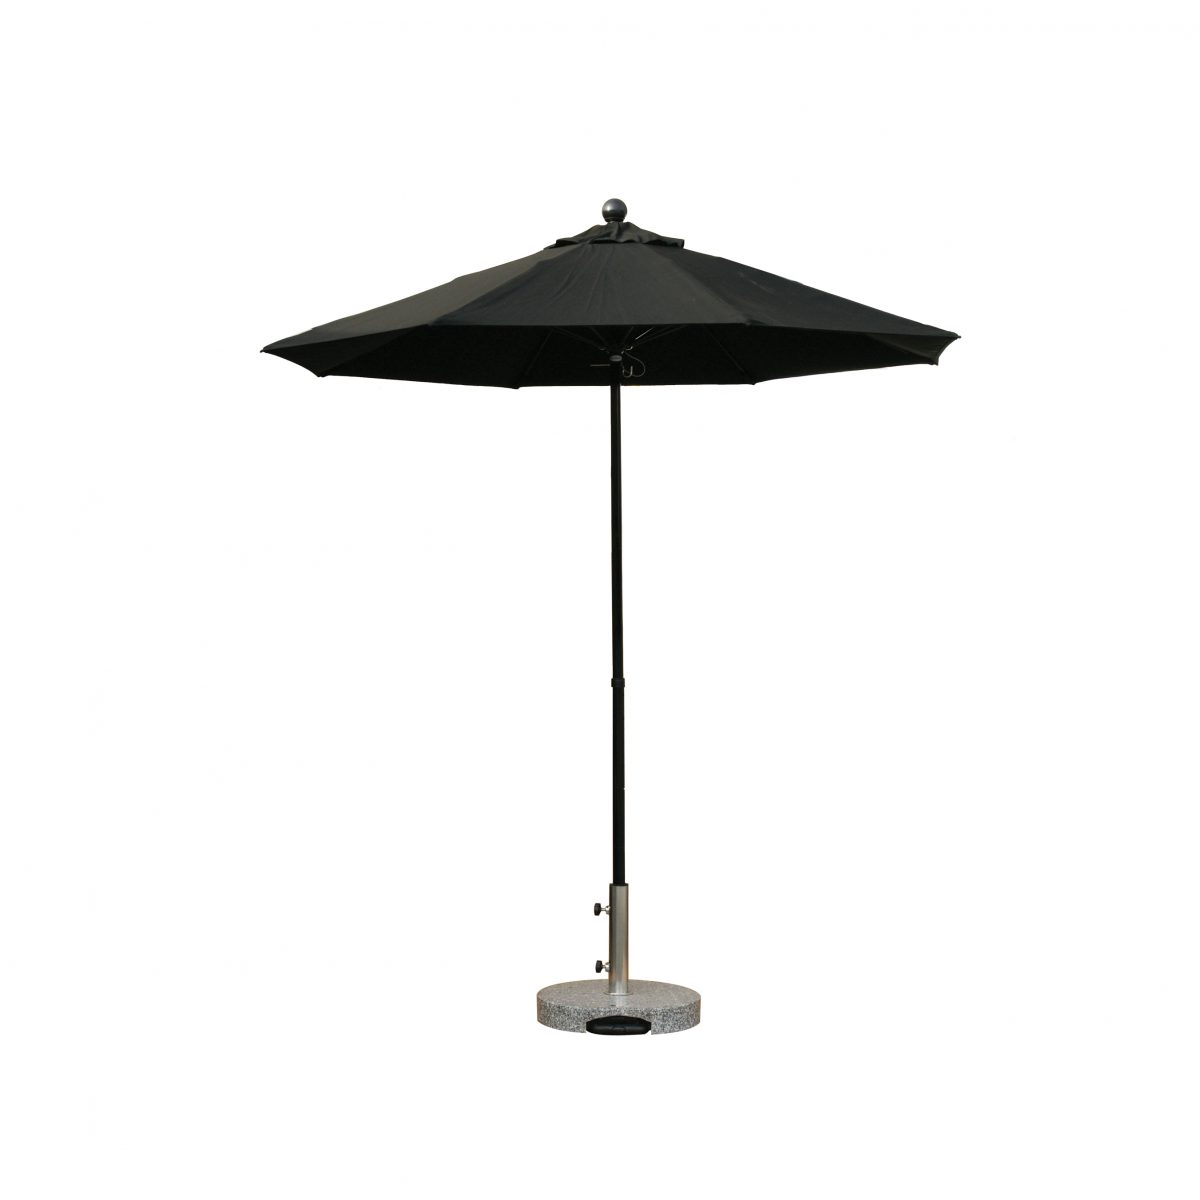 Patio-Umbrella-UM00904BLK-1200x1200.jpg